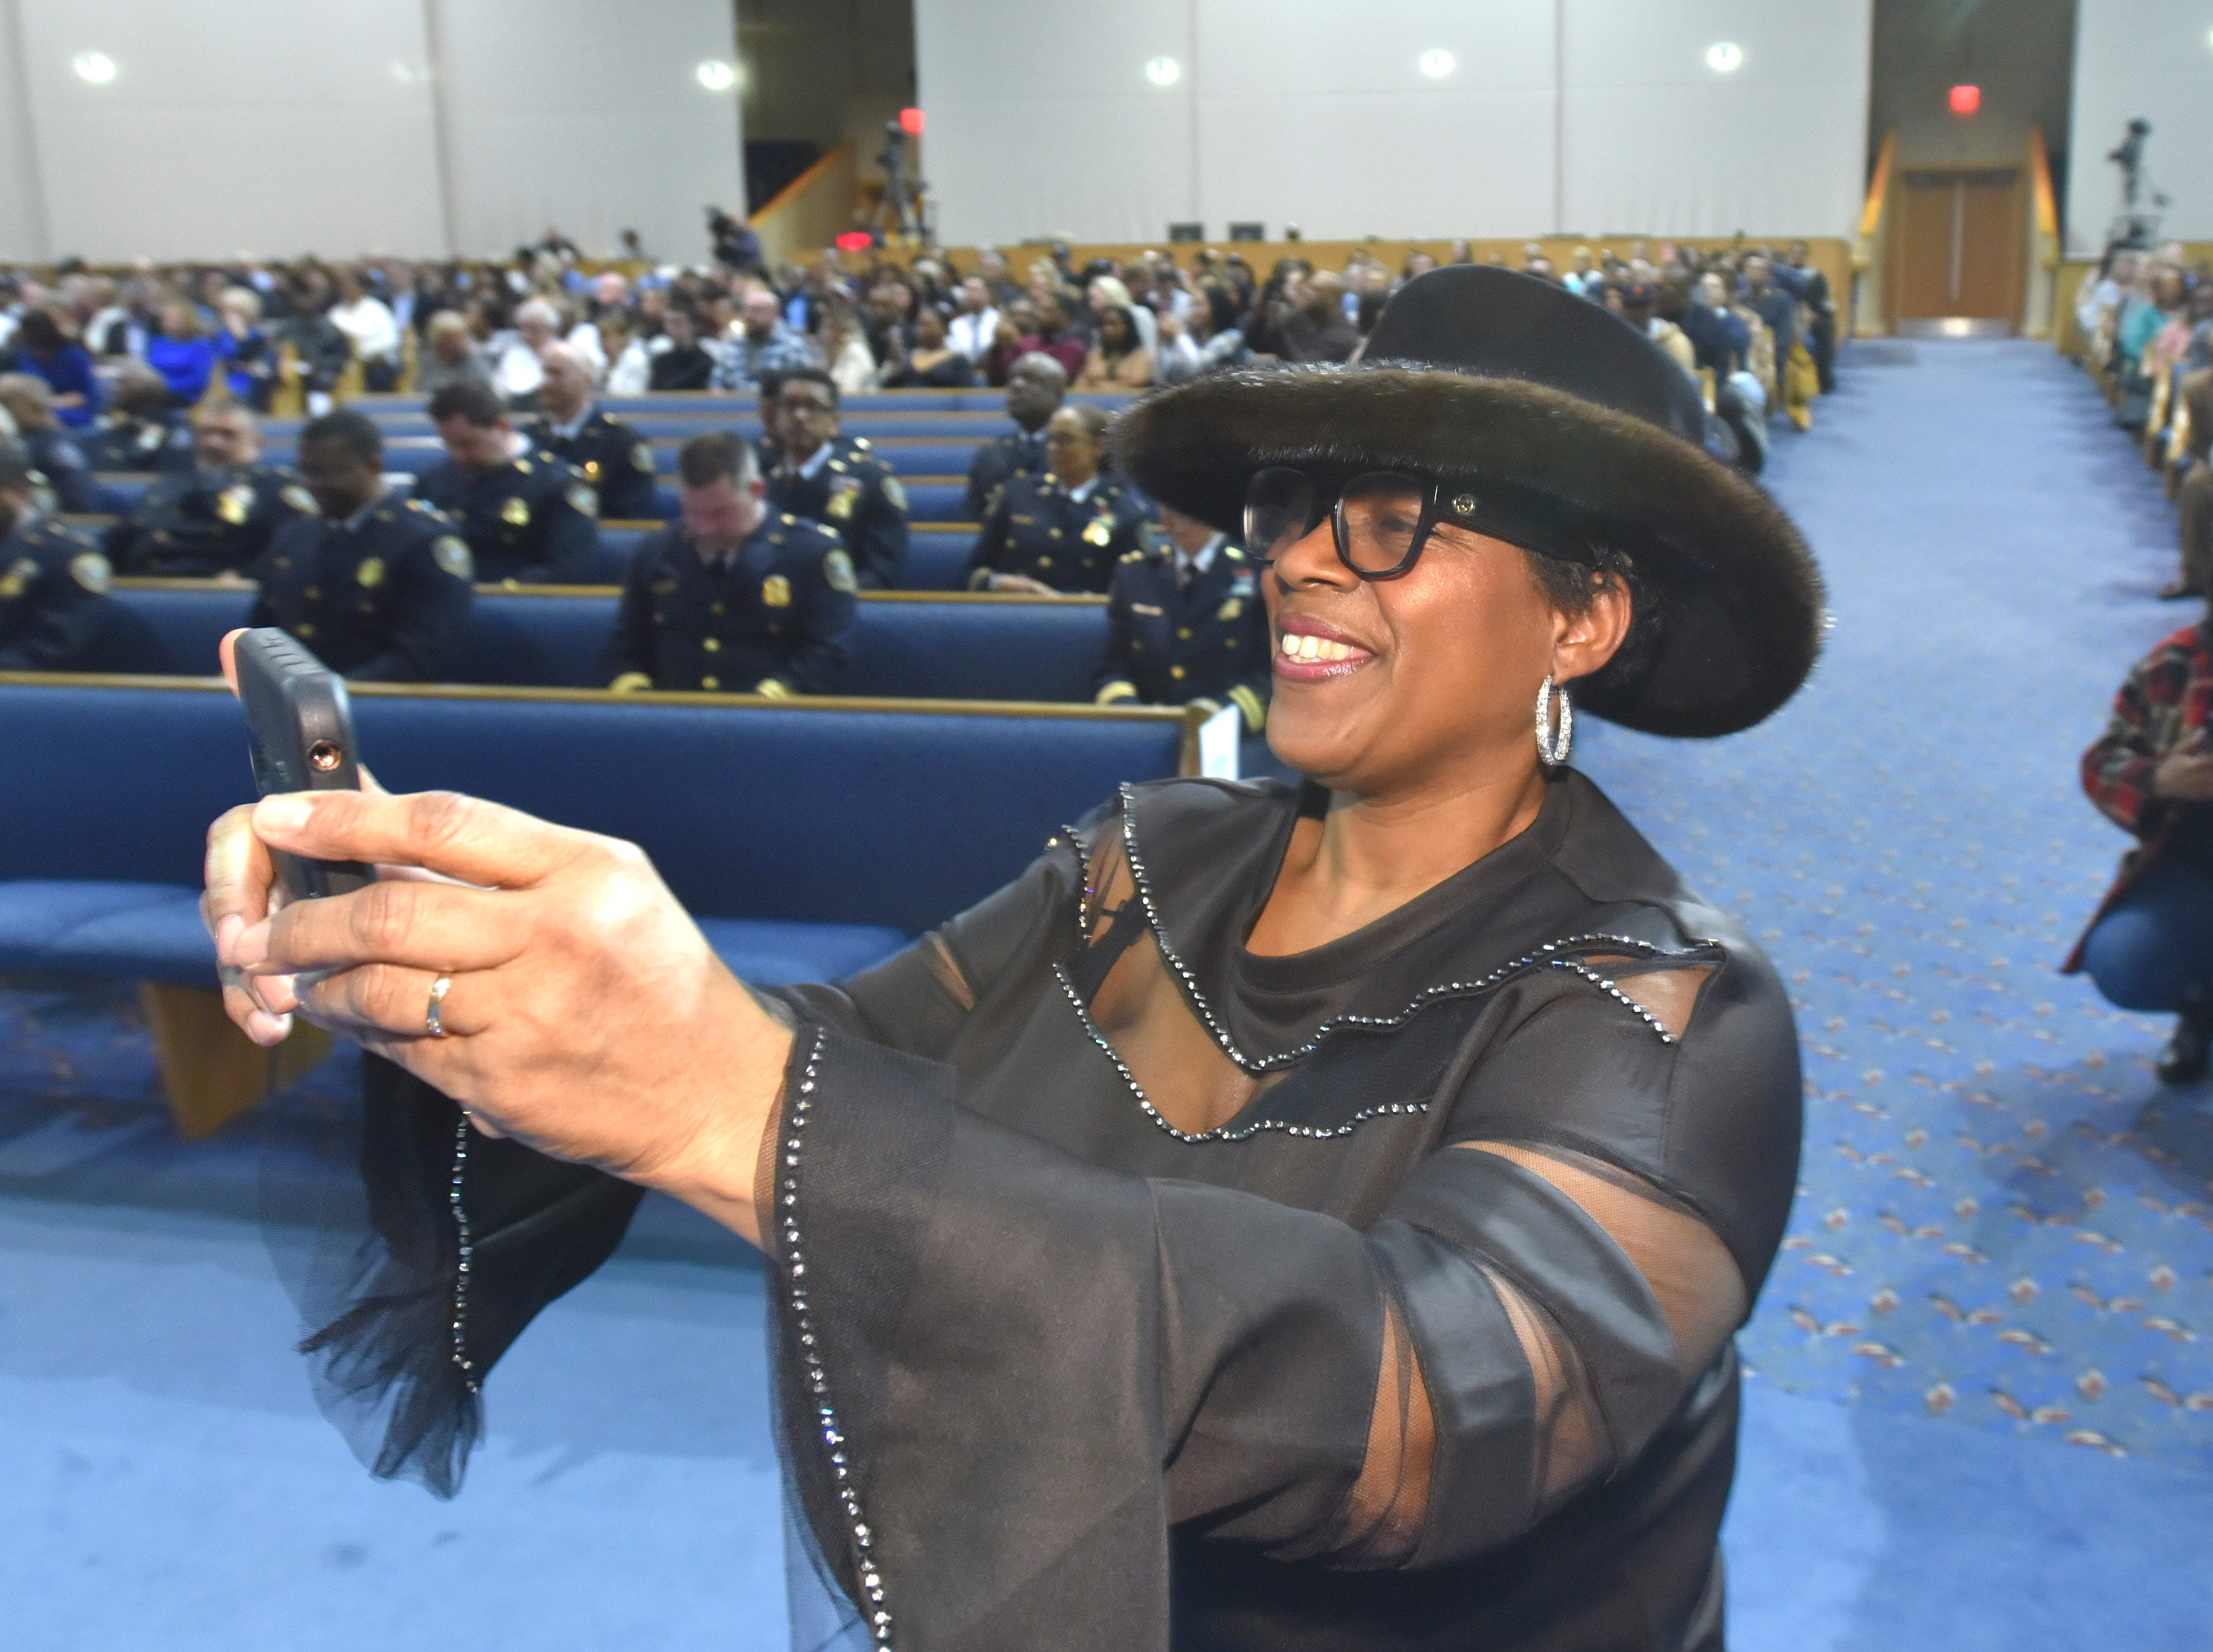 Denise Burley of Detroit takes pictures as her son, Kenneth Burley, receives his police badge.